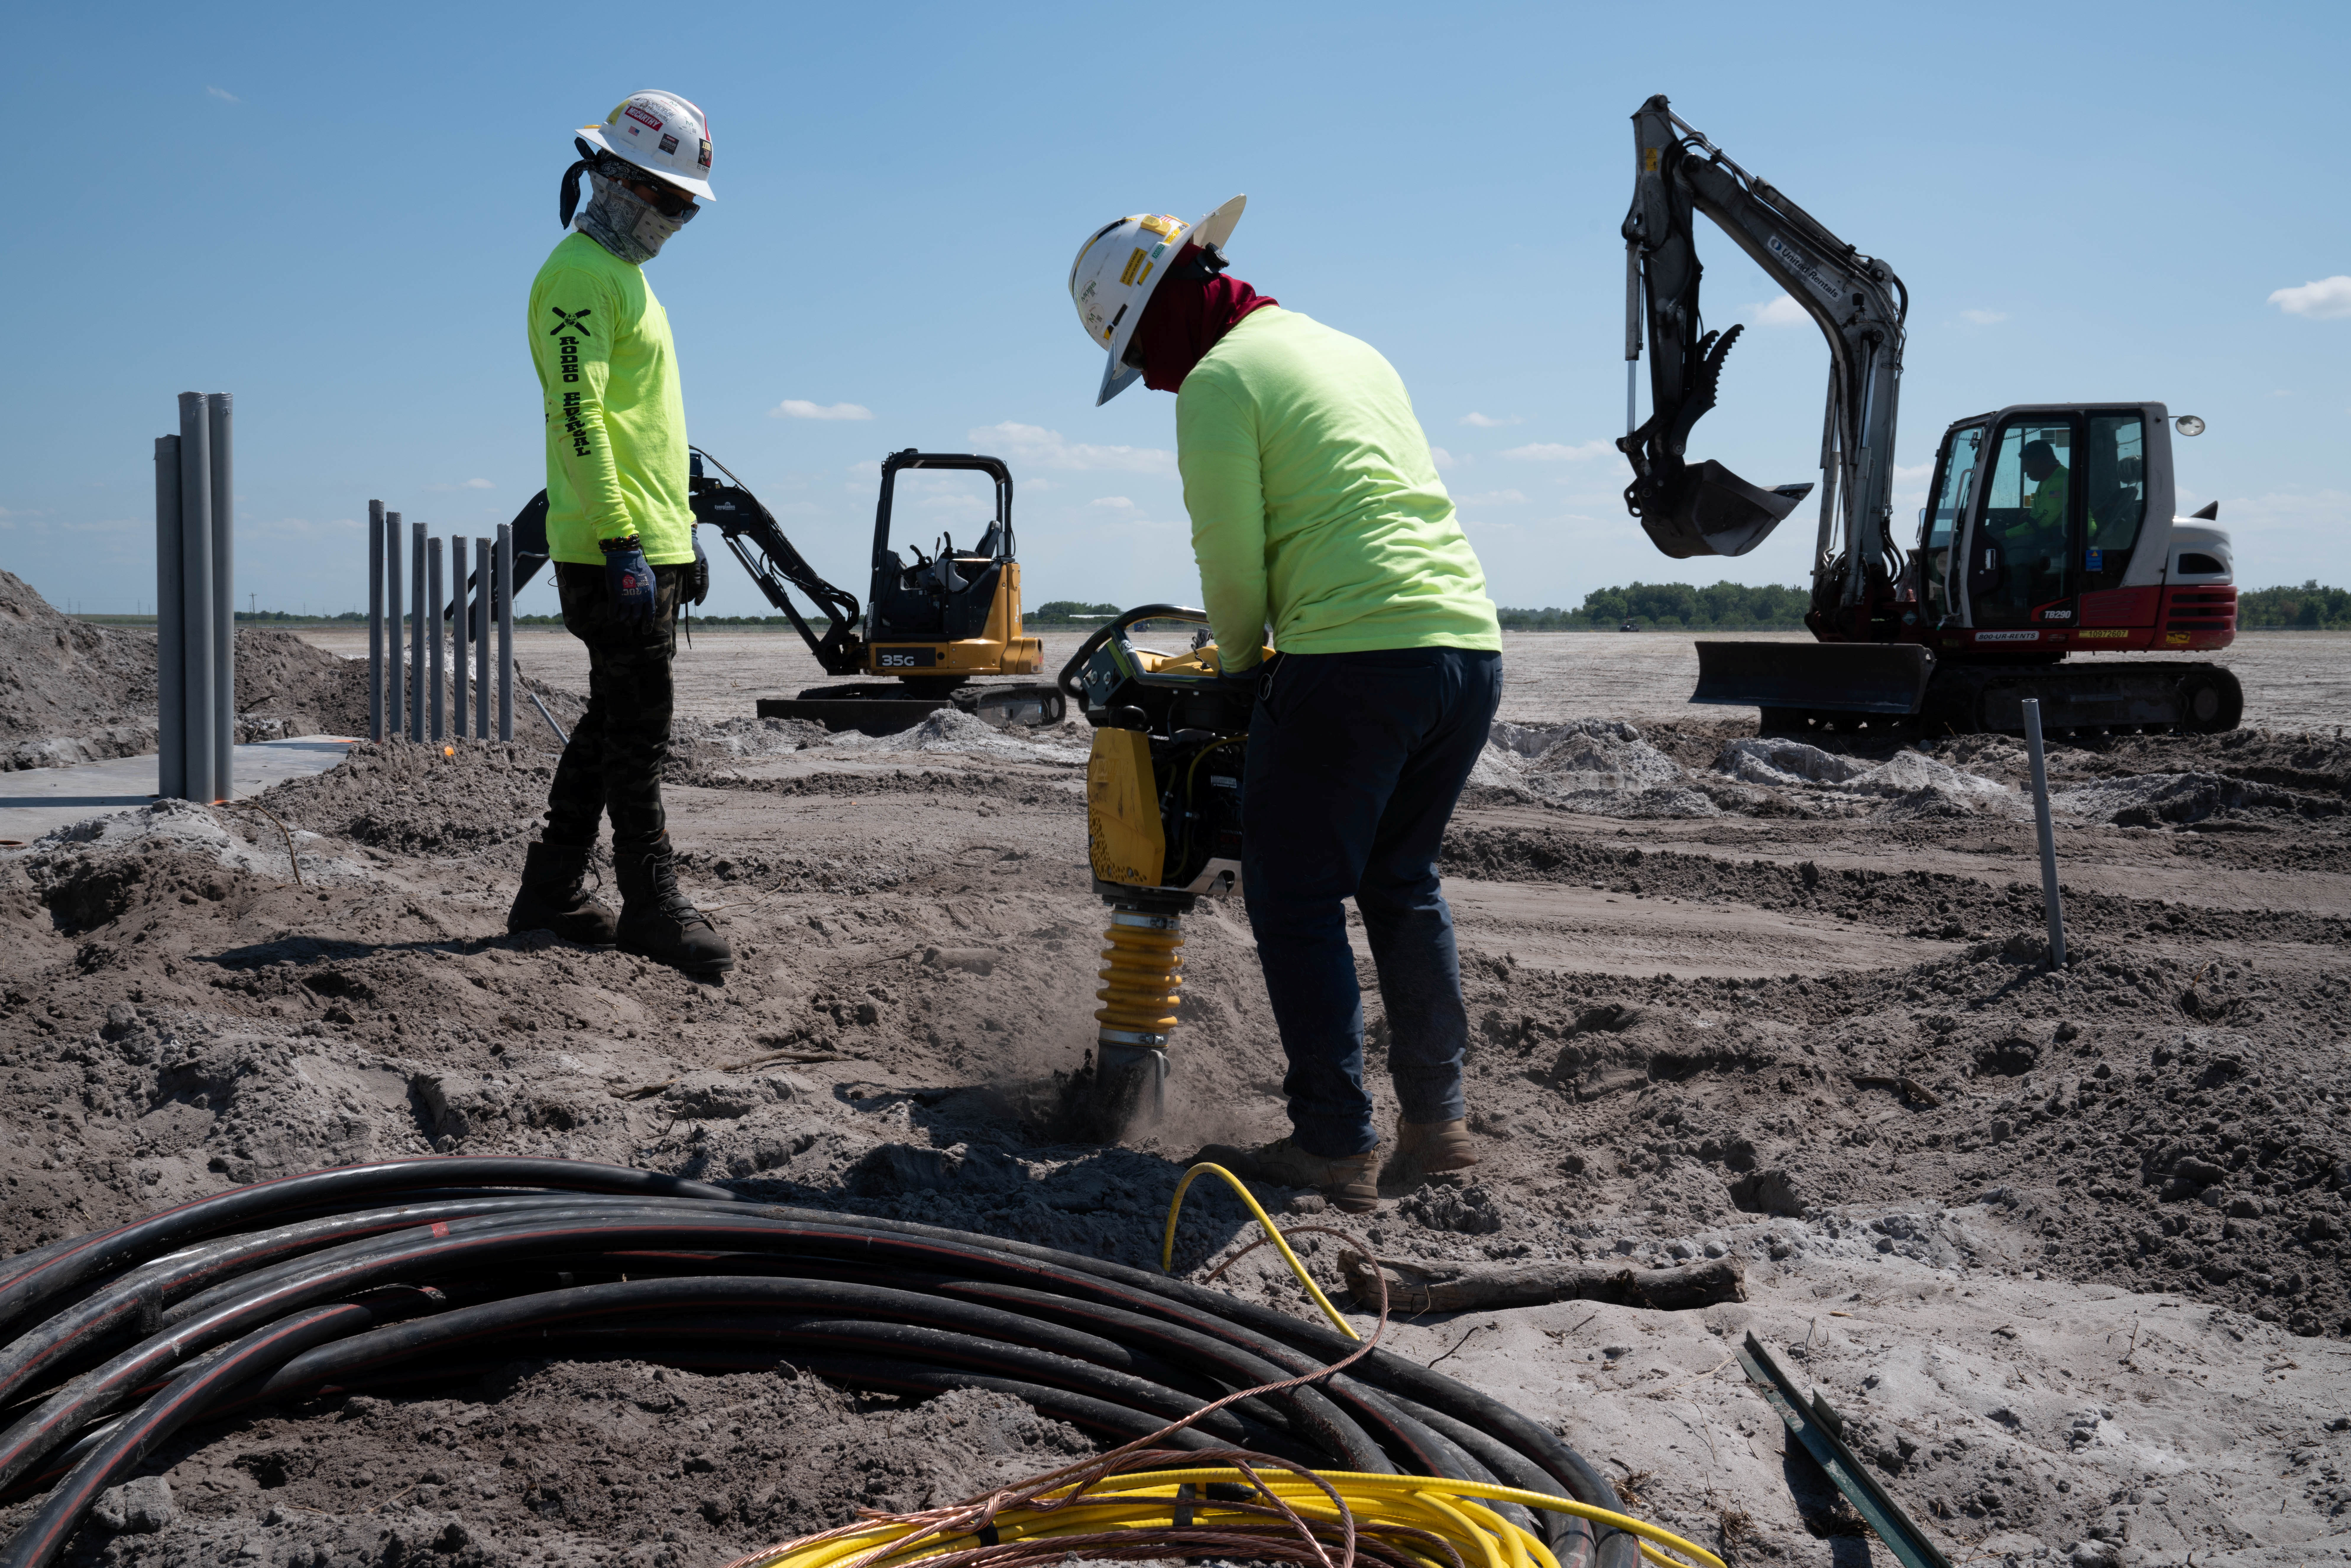 Workers prepare the ground for construction at the Duette solar site which is being developed on previously agricultural land in Bowling Green, Florida, U.S., March 24, 2021. REUTERS/Dane Rhys